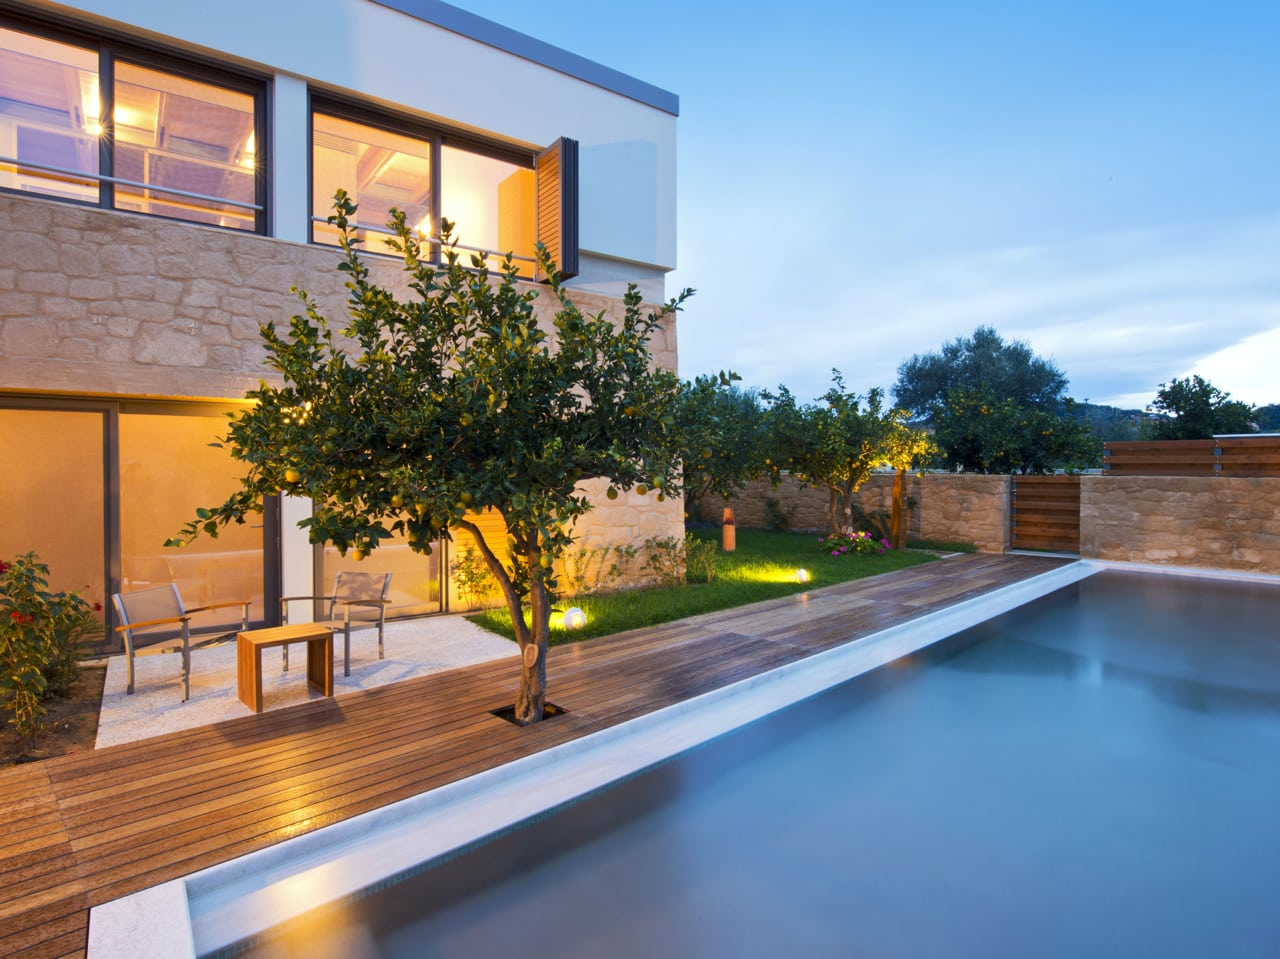 Conte Marino Villas: Superb Villas In Chania, Crete With 15% Offer